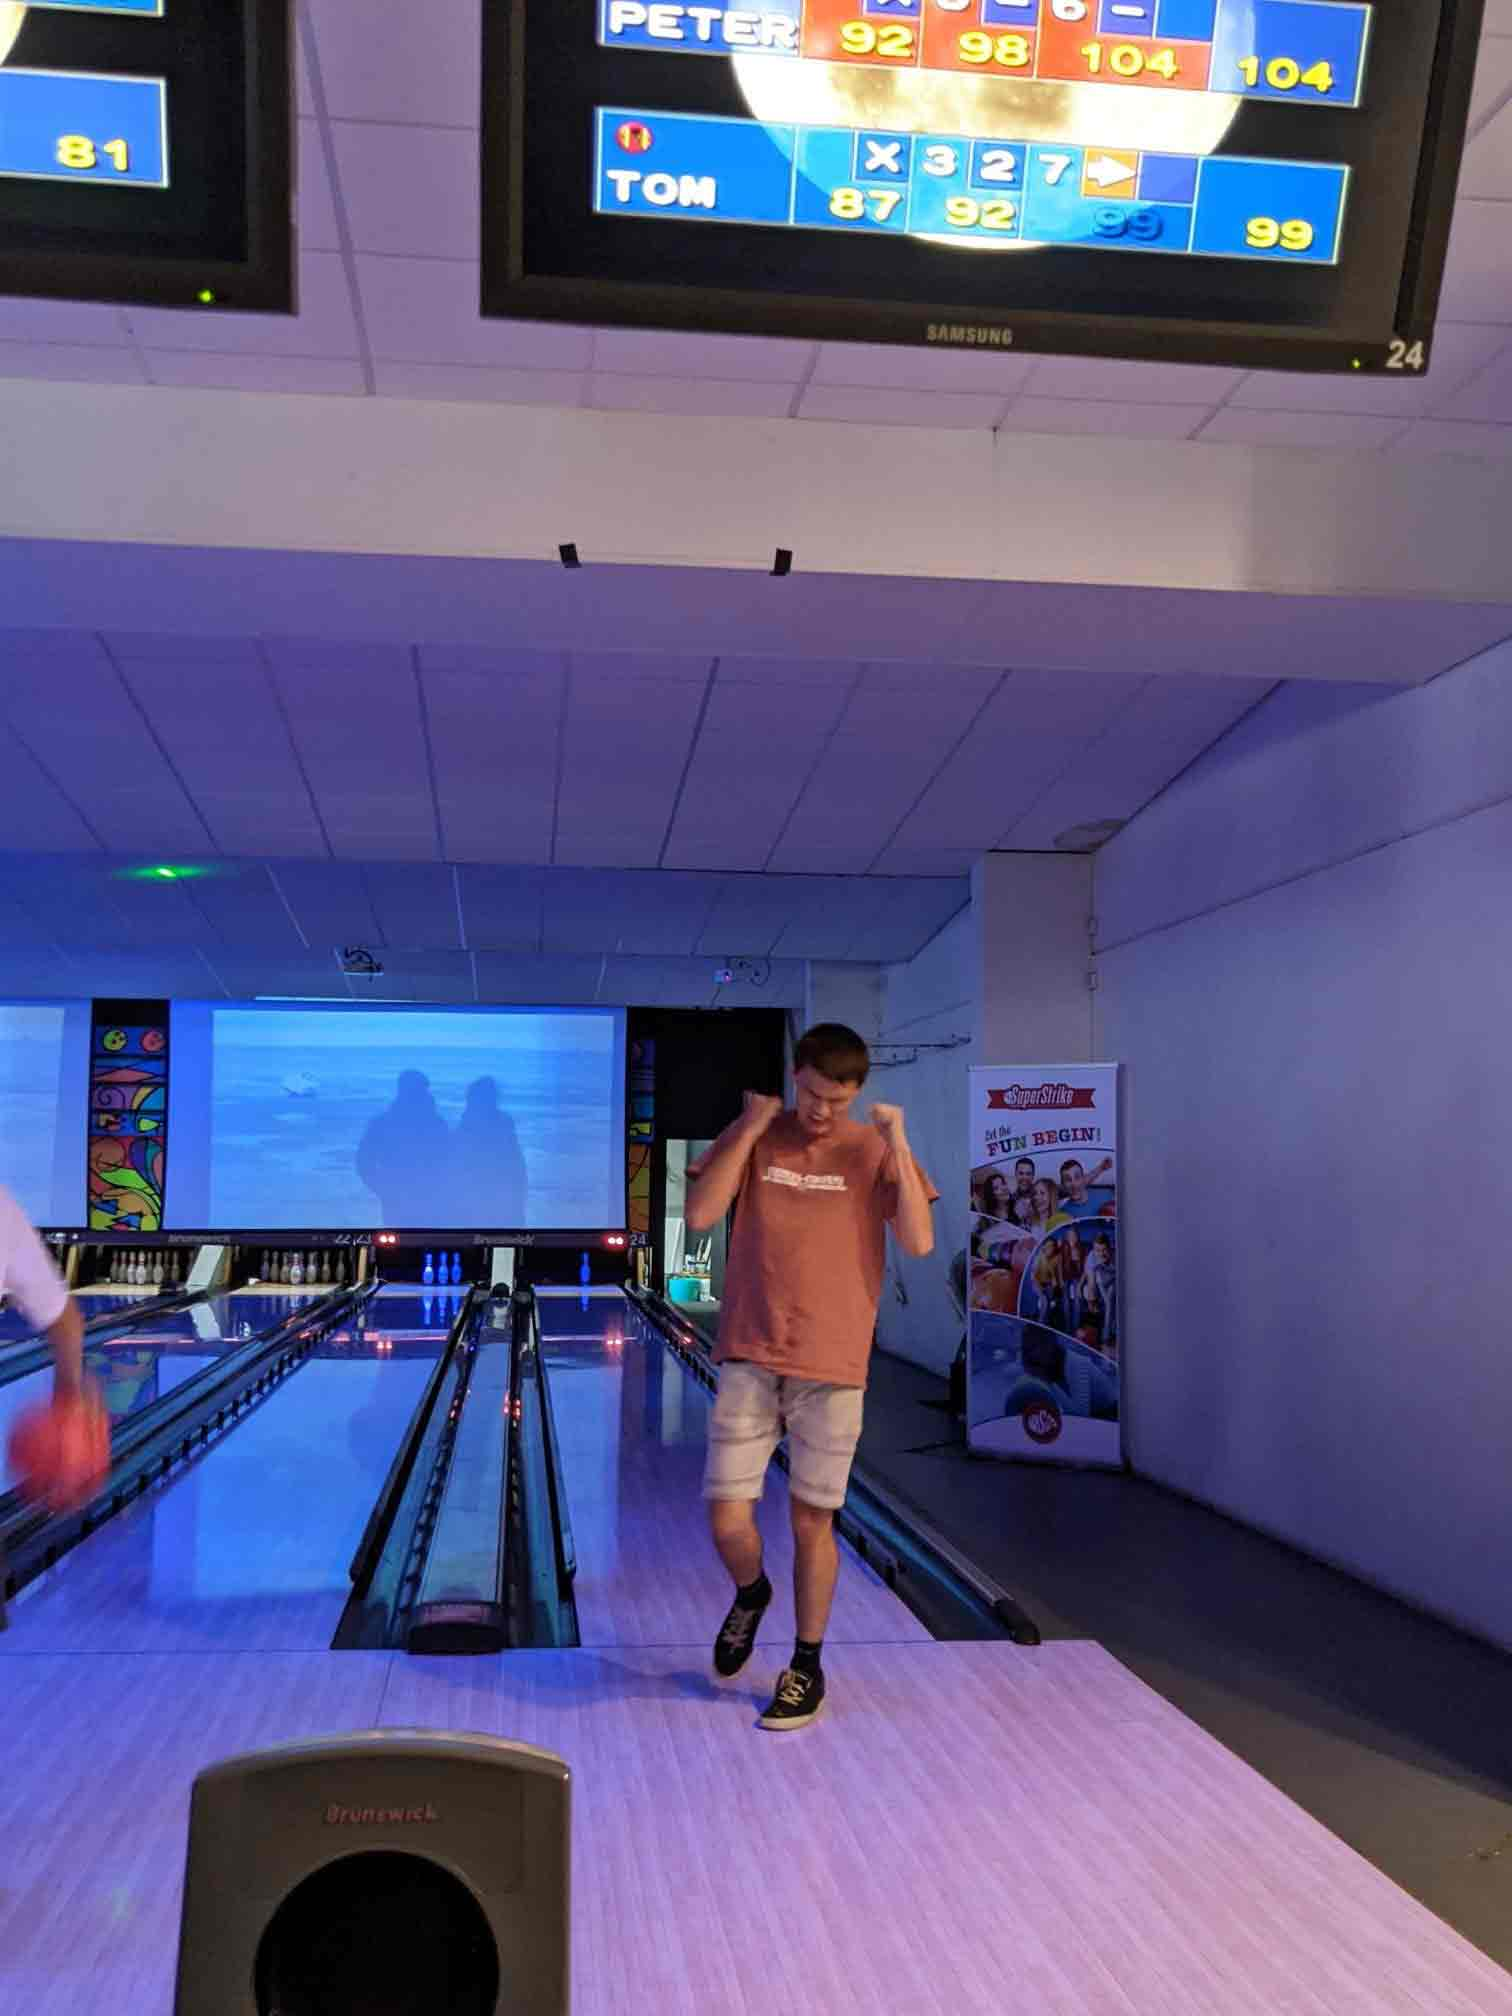 Thomas standing at the end of the bowling alley